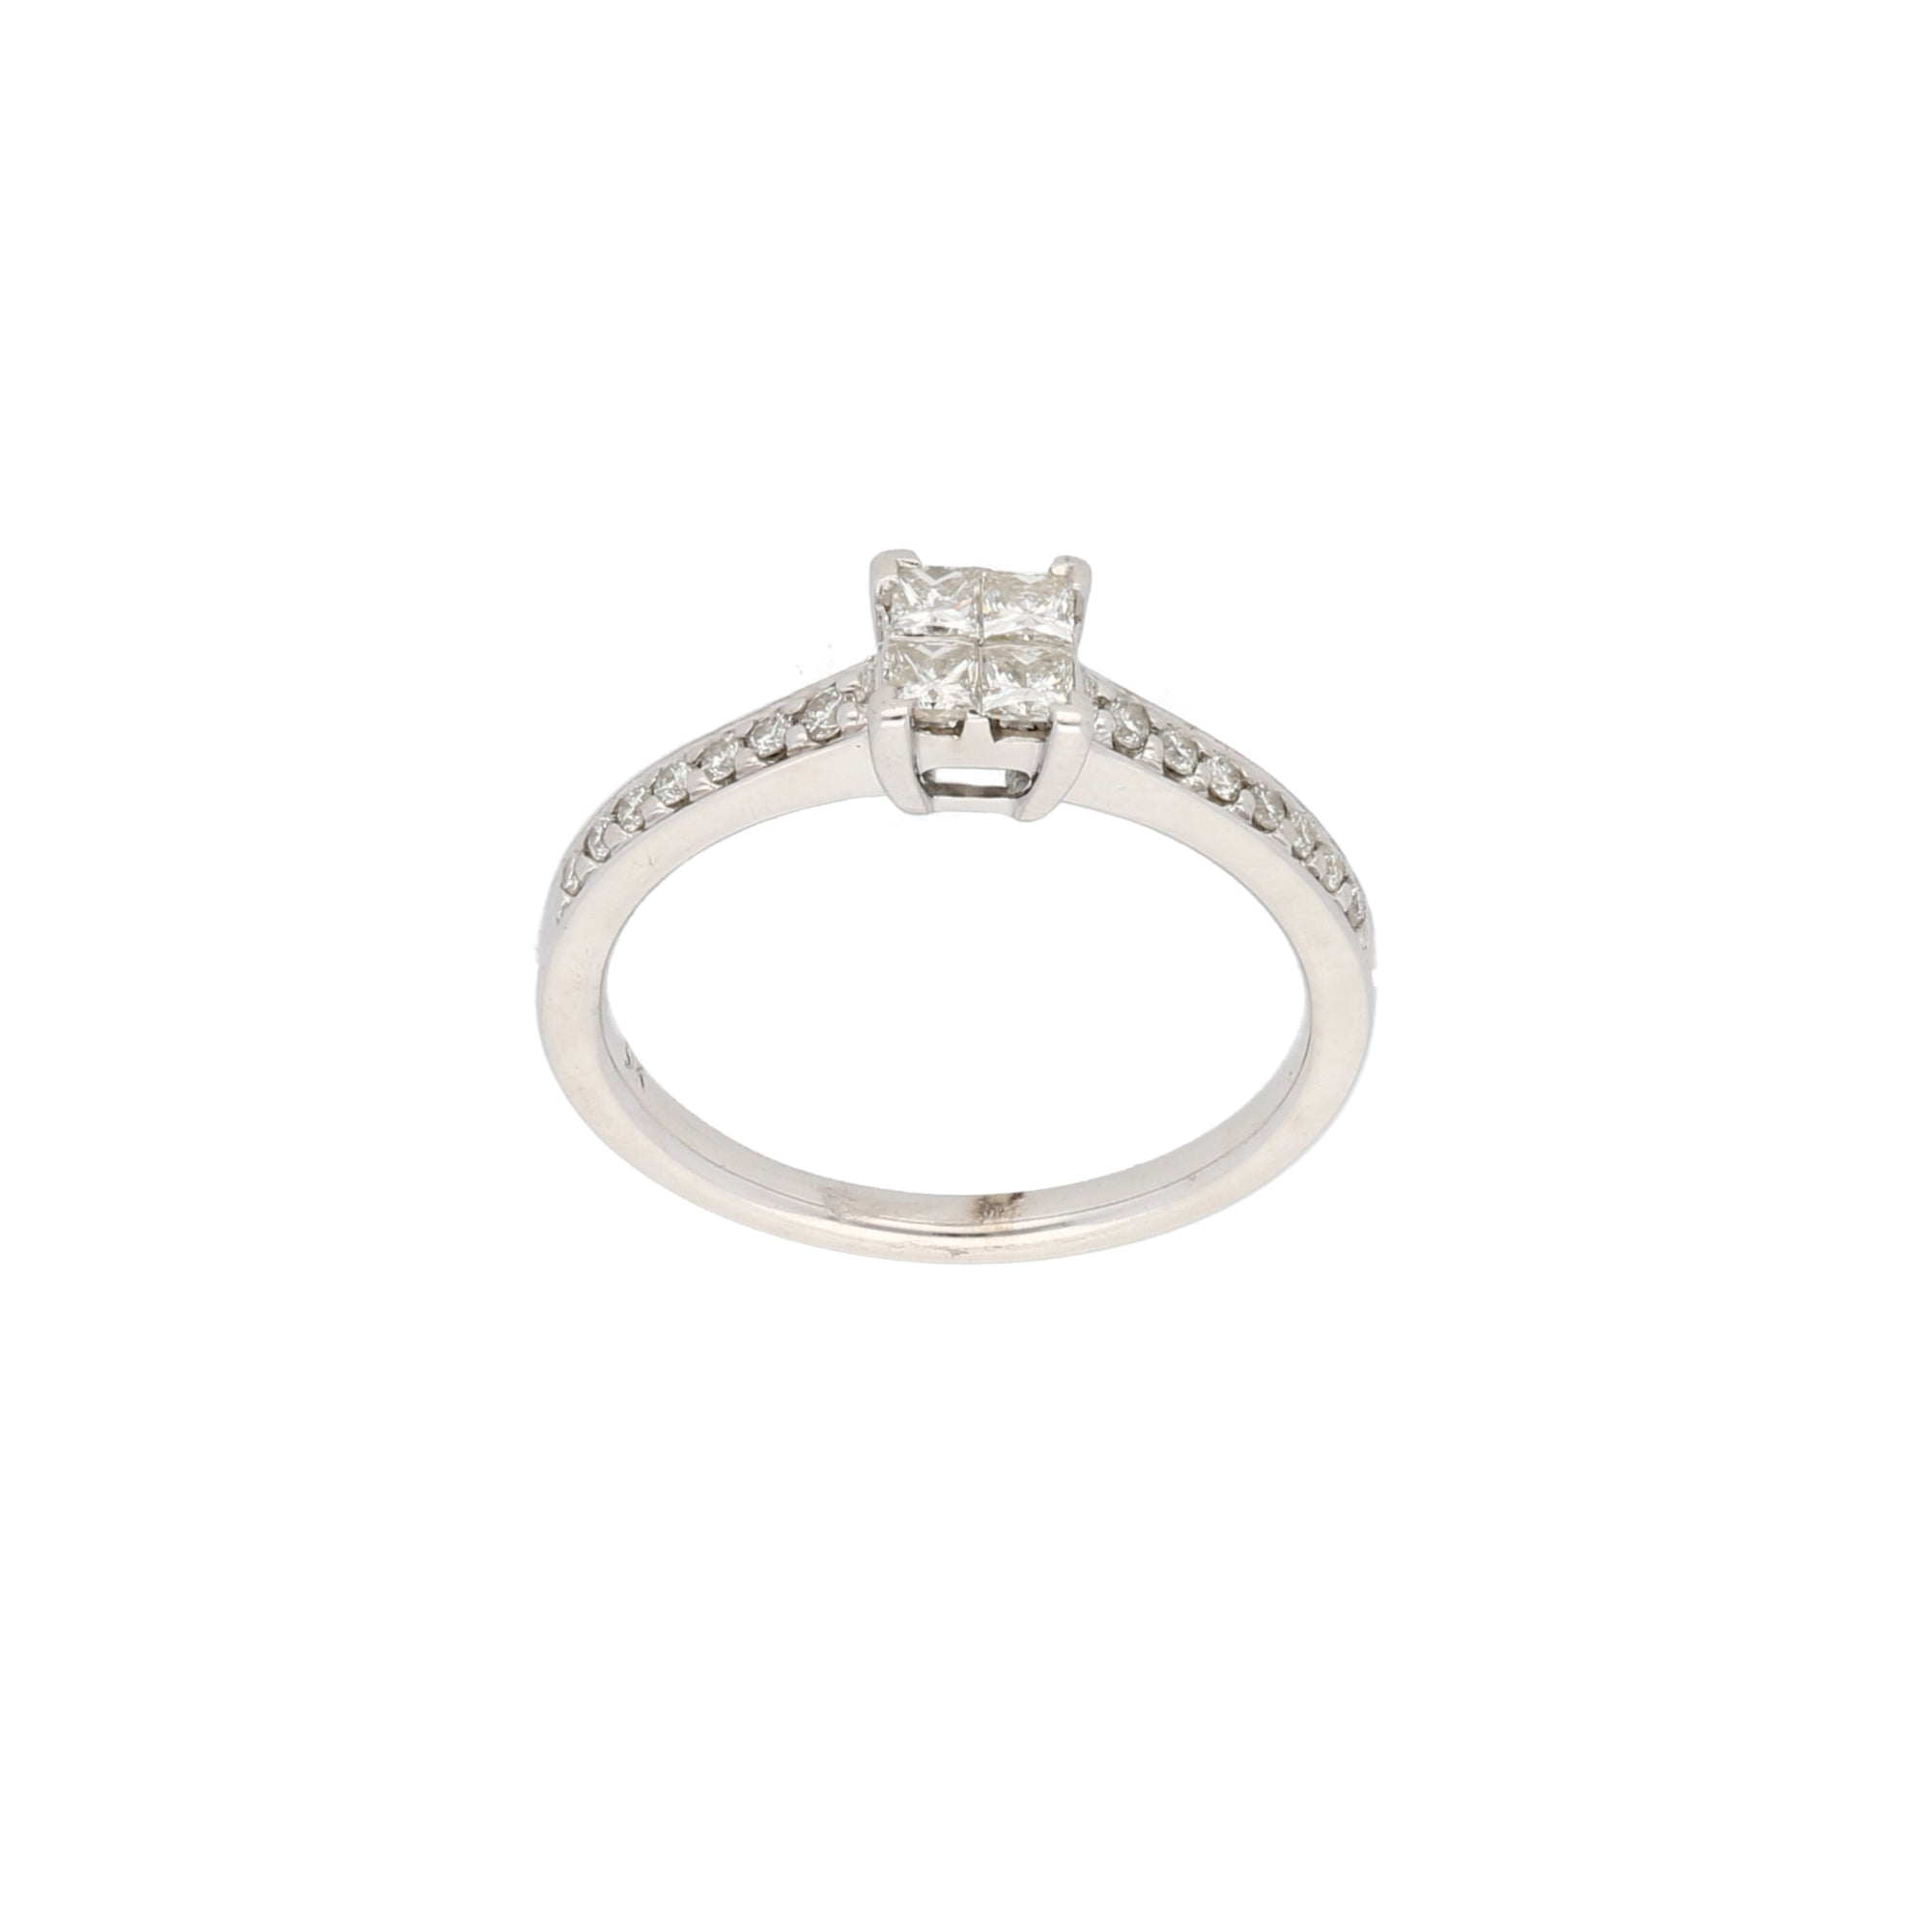 9ct White Gold 0.05ct Square Cut Diamond & 0.01ct Round Cut Diamond Ladies Cluster Ring Size L